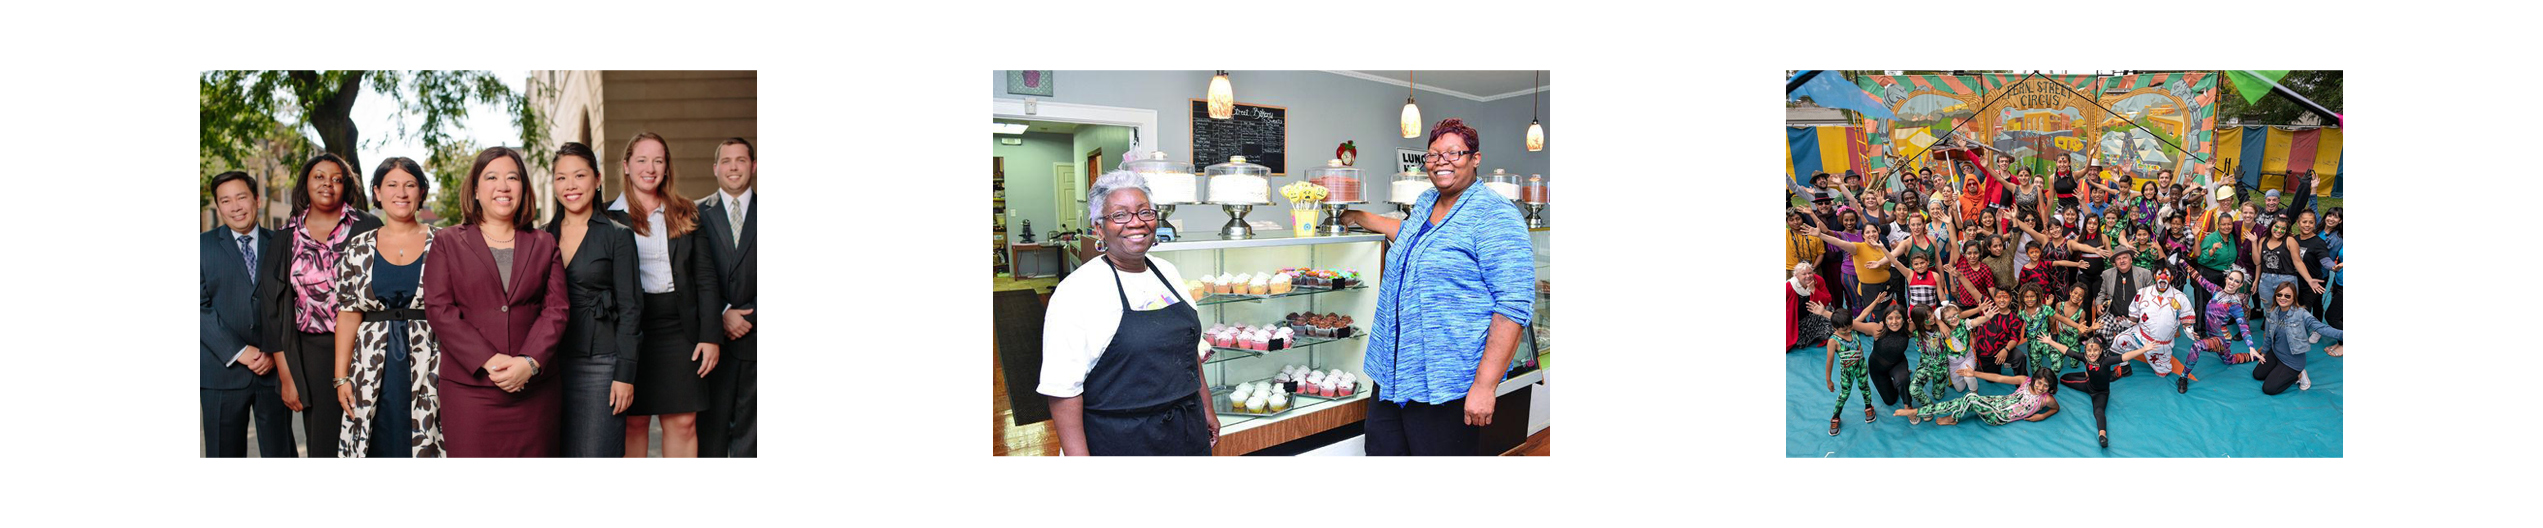 PPP Loan recipient: Anne Shaw Legal Services / PPP Loan recipient: Main Street Bakery & Cafe in Columbia, SC. Photo by Nate Abraham Jr., Carolina Panorama Newspaper / PPP Loan recipient: Fern Street Circus